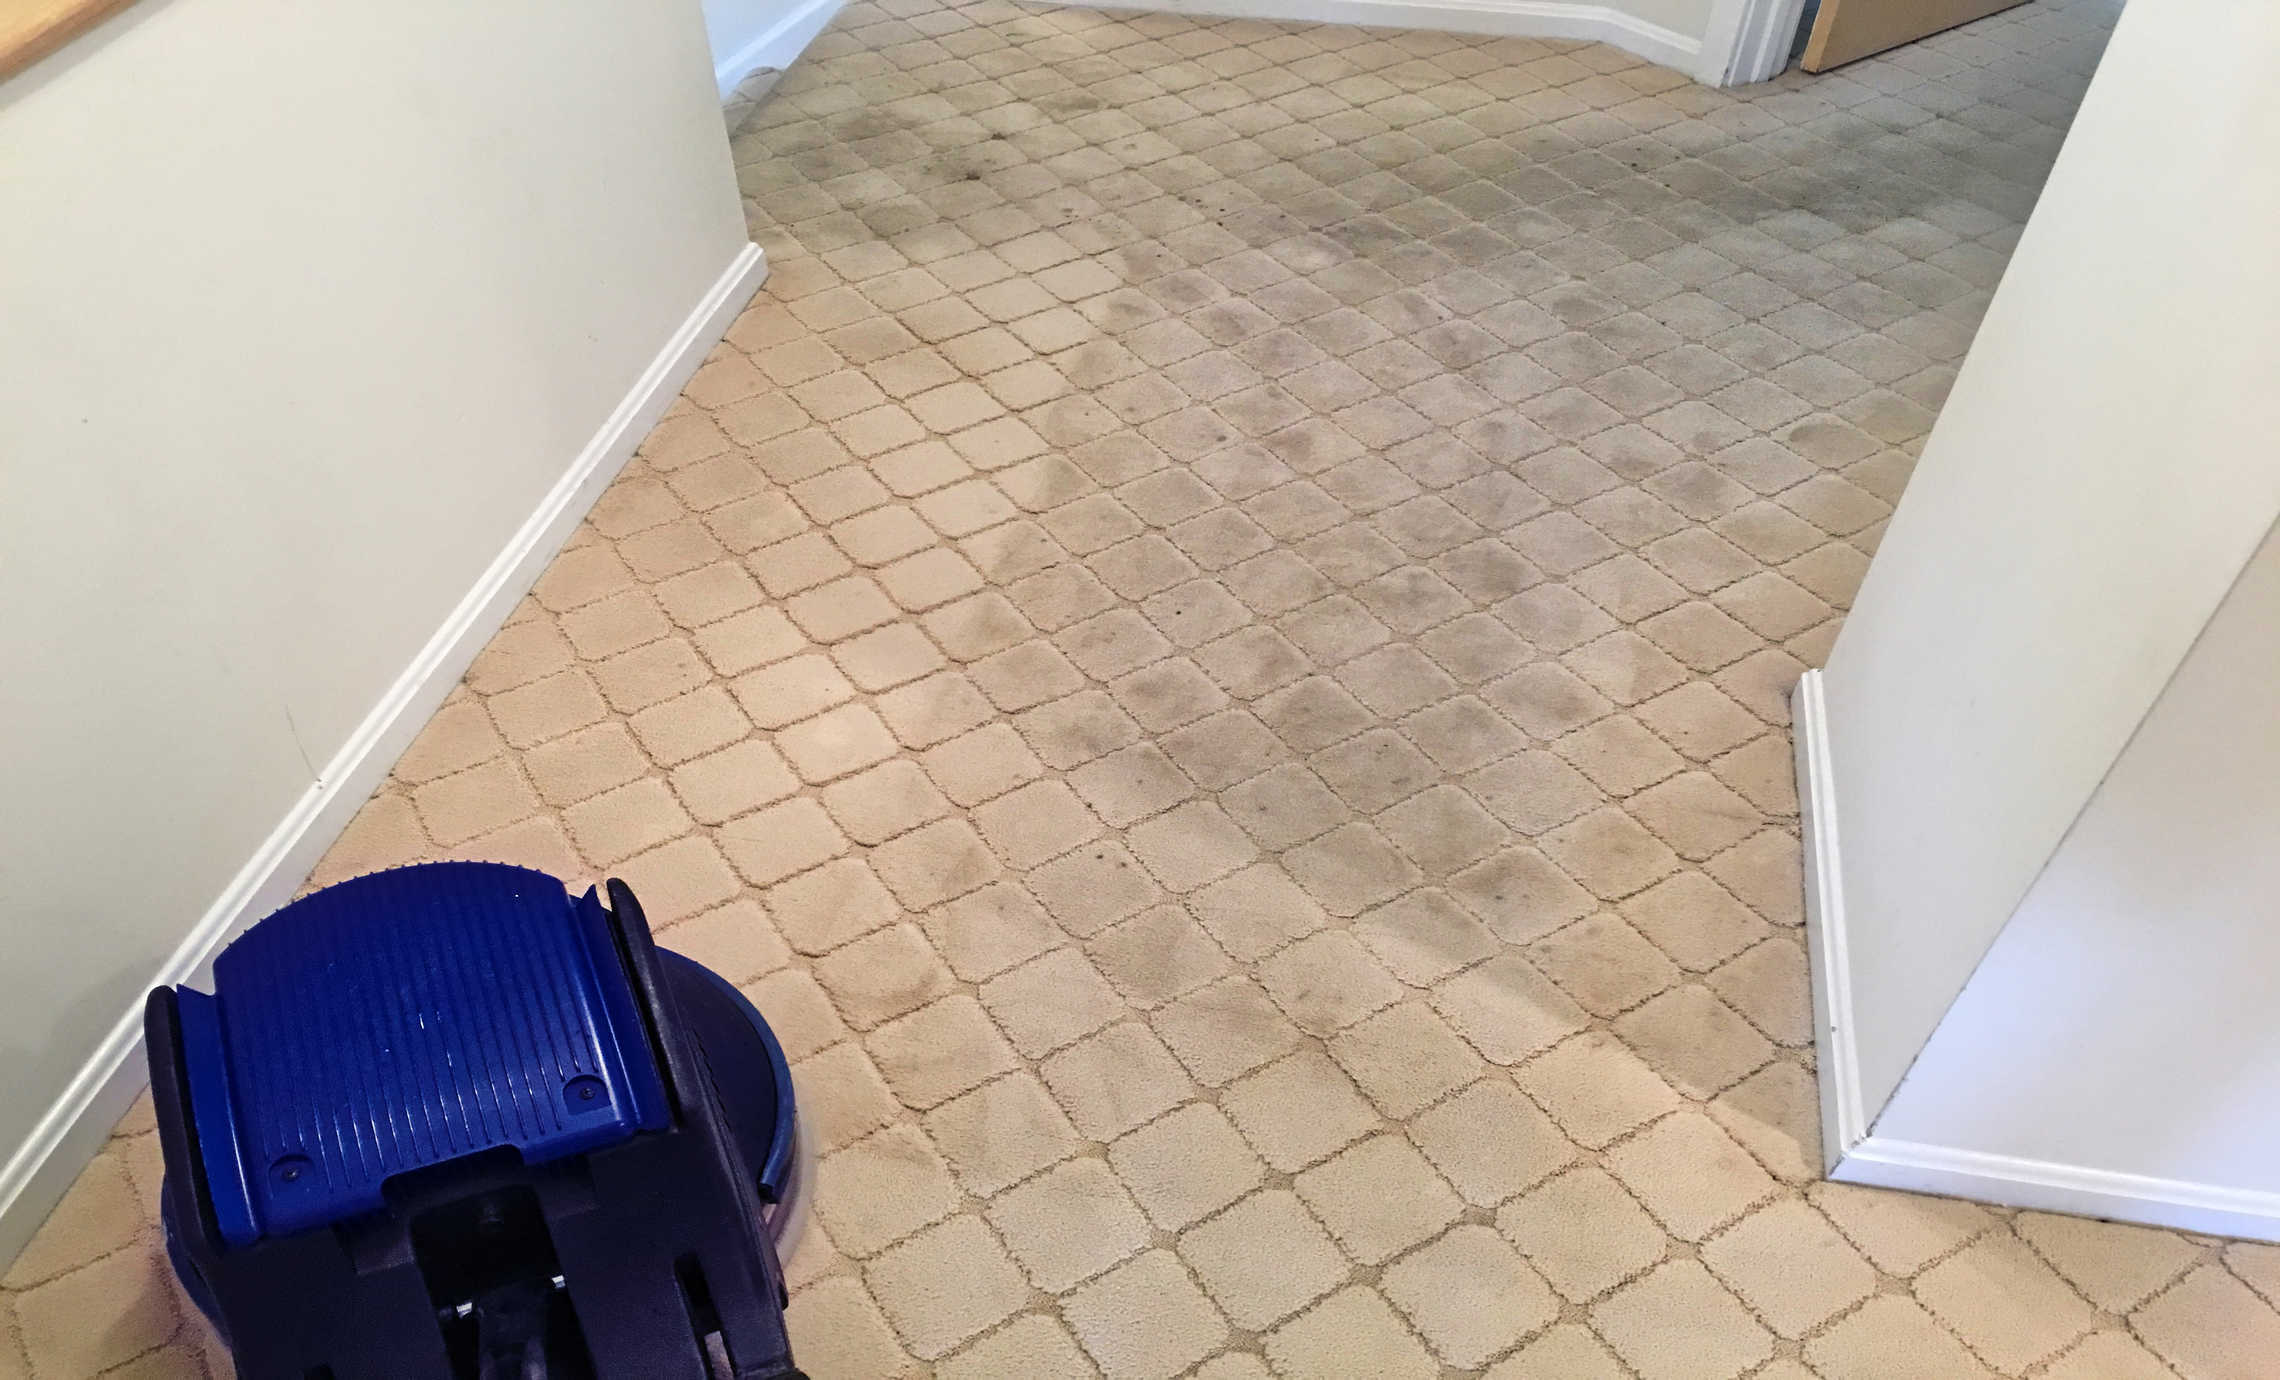 Heavily soiled carpet scrubbing for Sanitize 4 Serenity